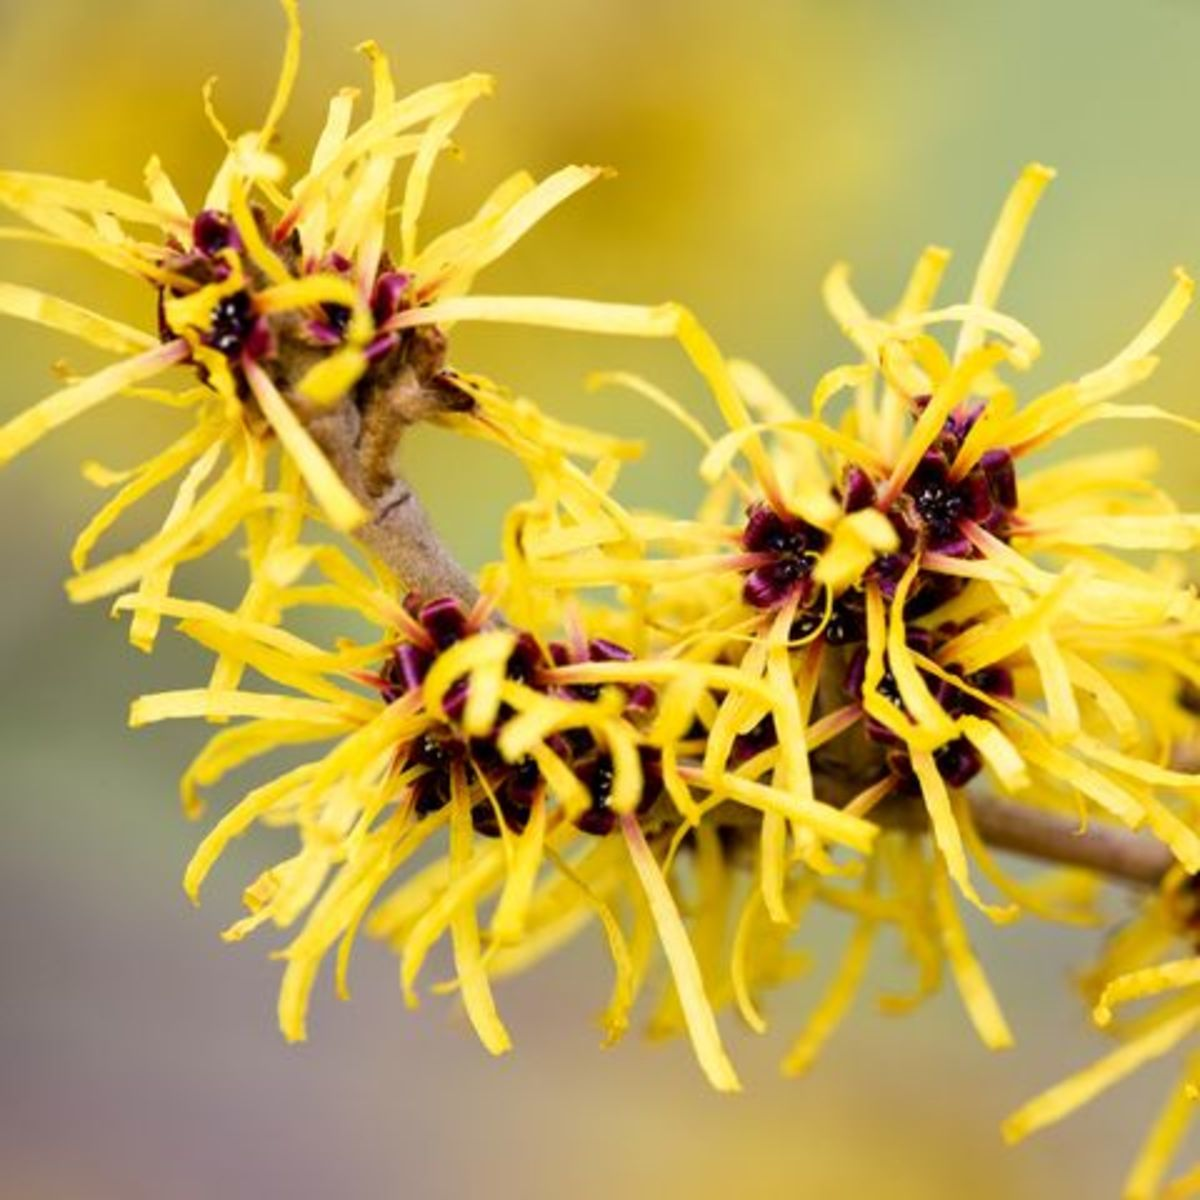 Witch hazel is indigenous to North America and parts of Asia. It has a history of use for sores, wounds, hemorrhoids, and other external abrasions, and was used medicinally by a variety of Native American tribes.